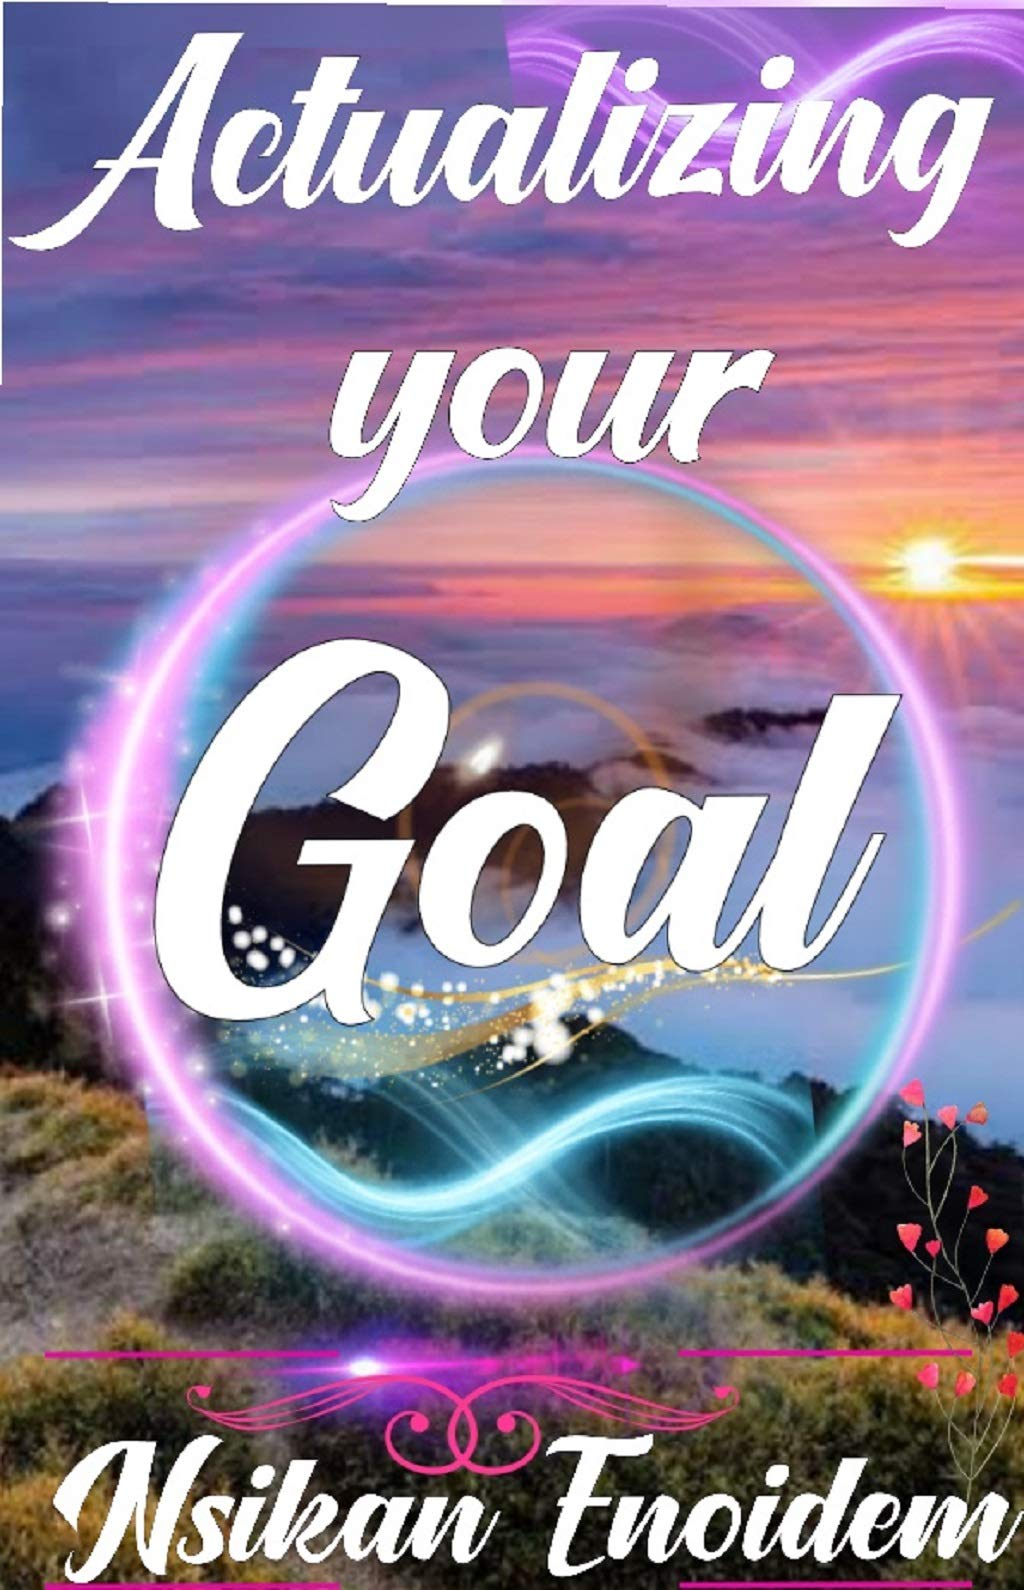 ACTUALIZING YOUR GOAL.